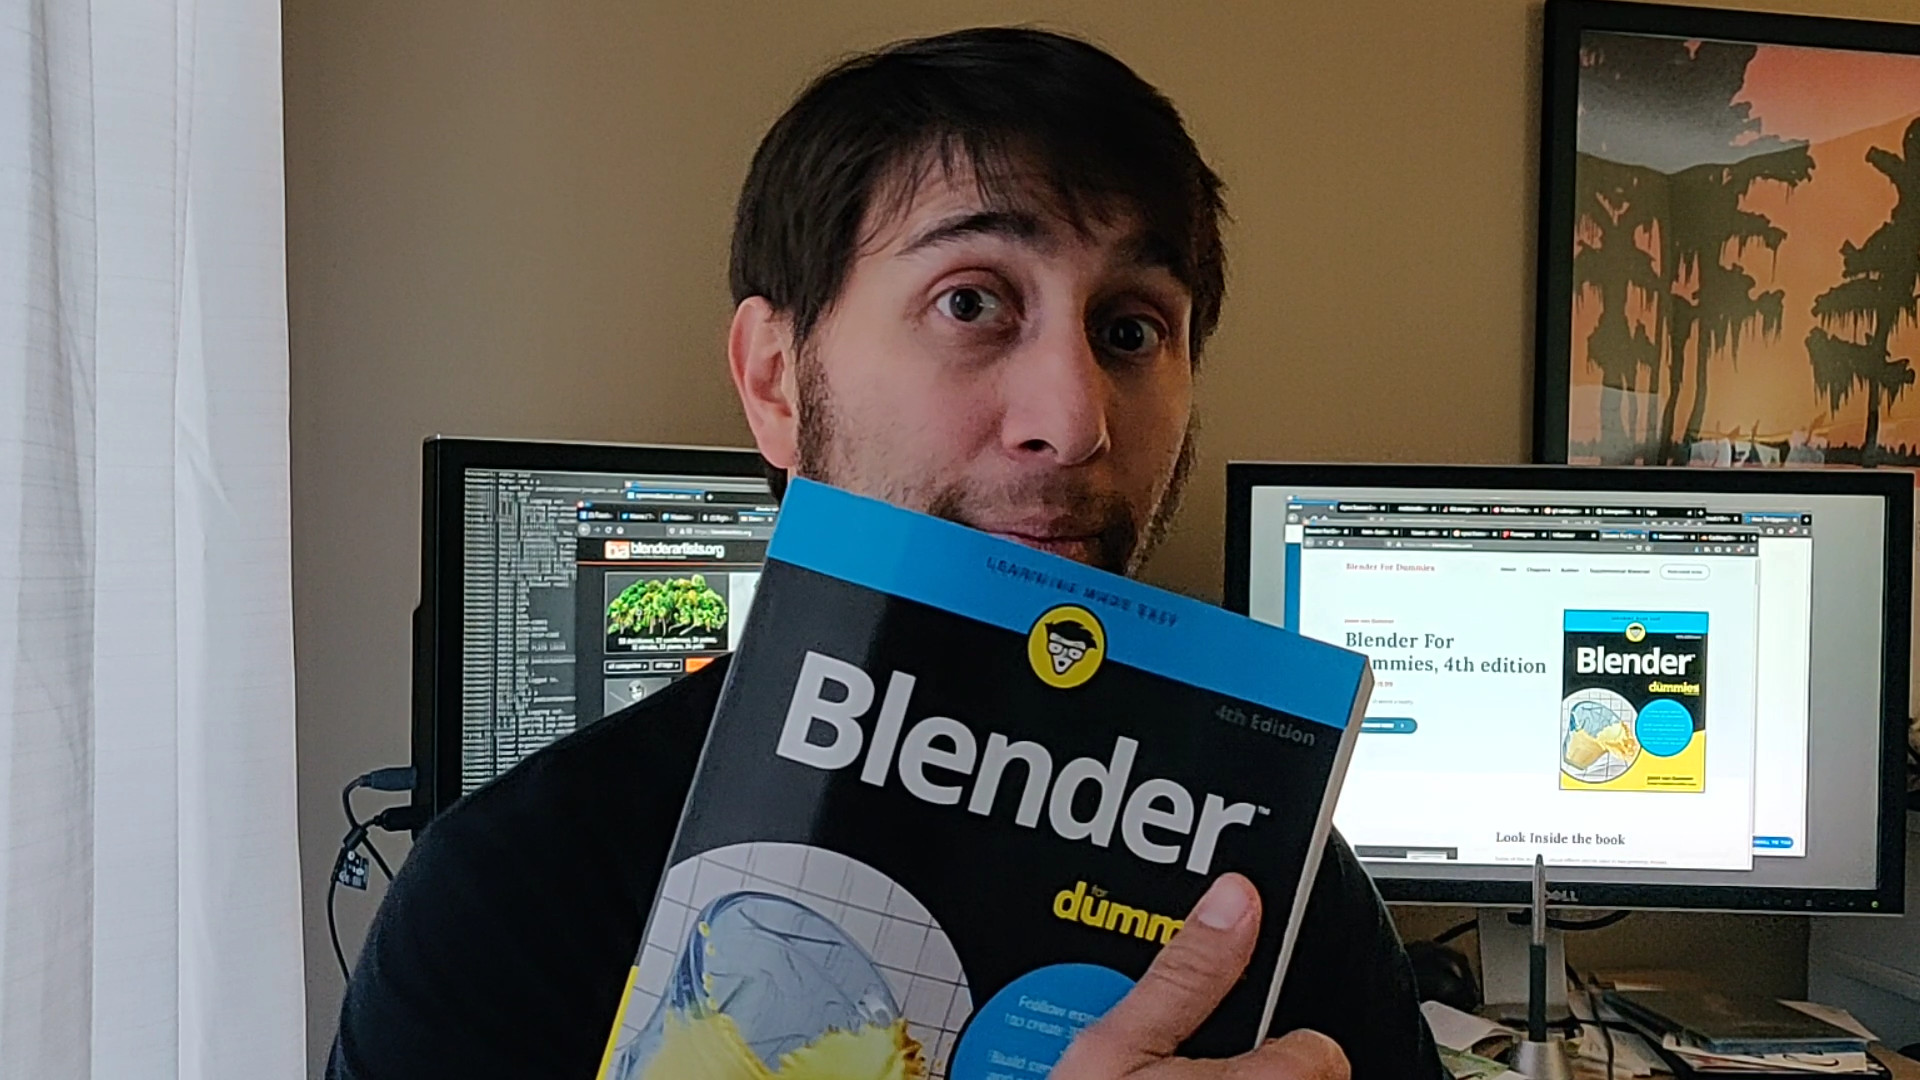 Blender For Dummies, 4th edition: It's out!